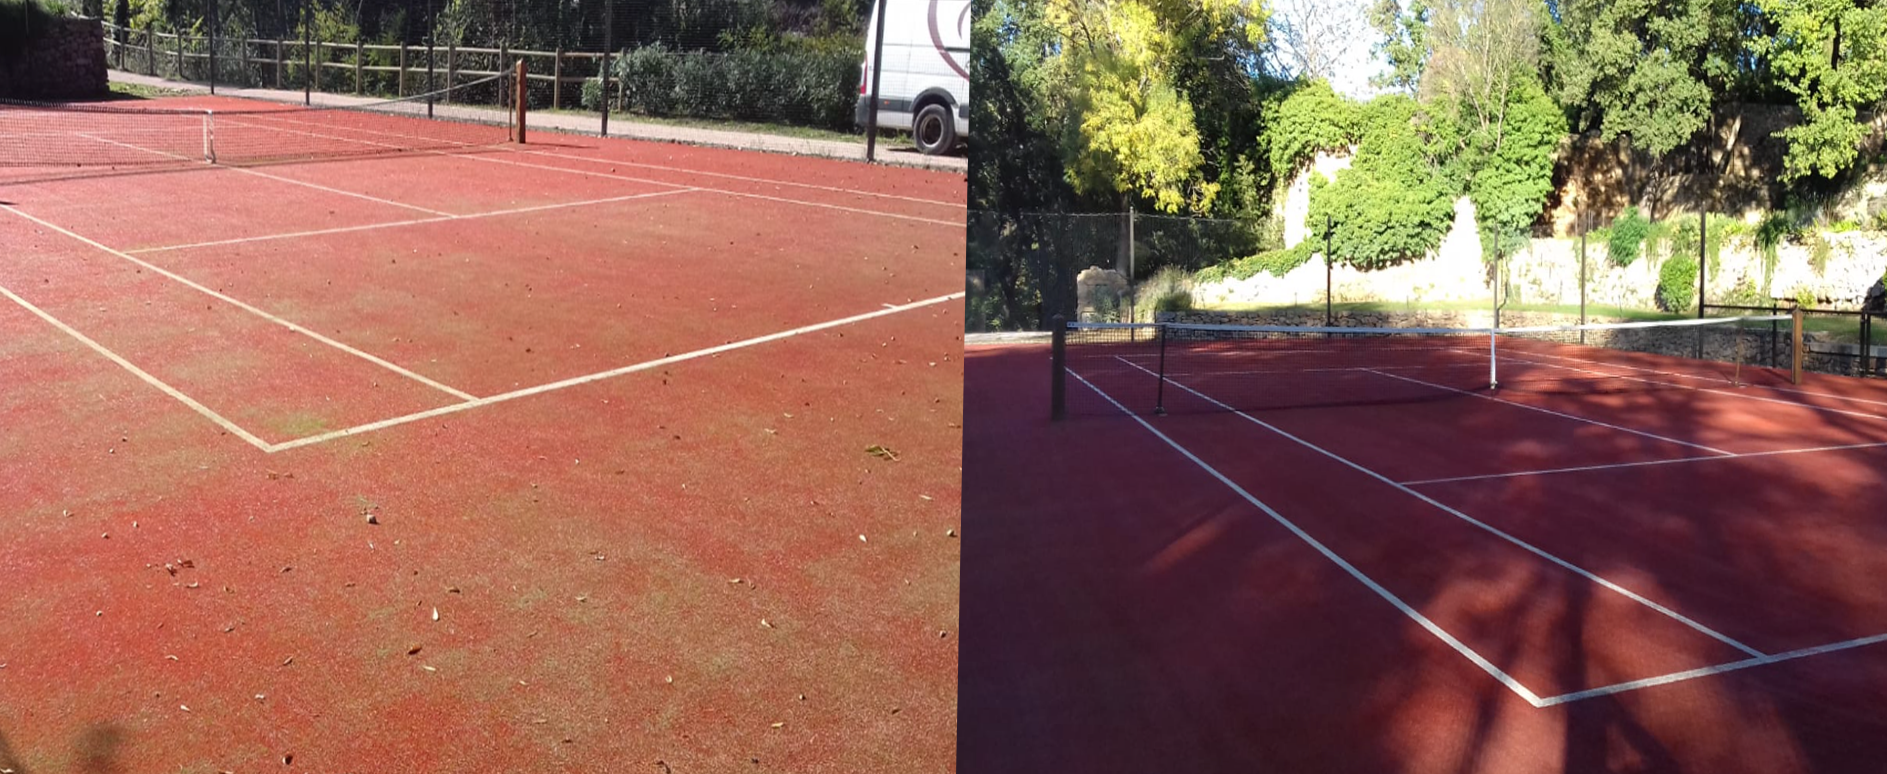 maintenance of a tennis court in synthetic clayentretien tennis du midi. Black Bedroom Furniture Sets. Home Design Ideas